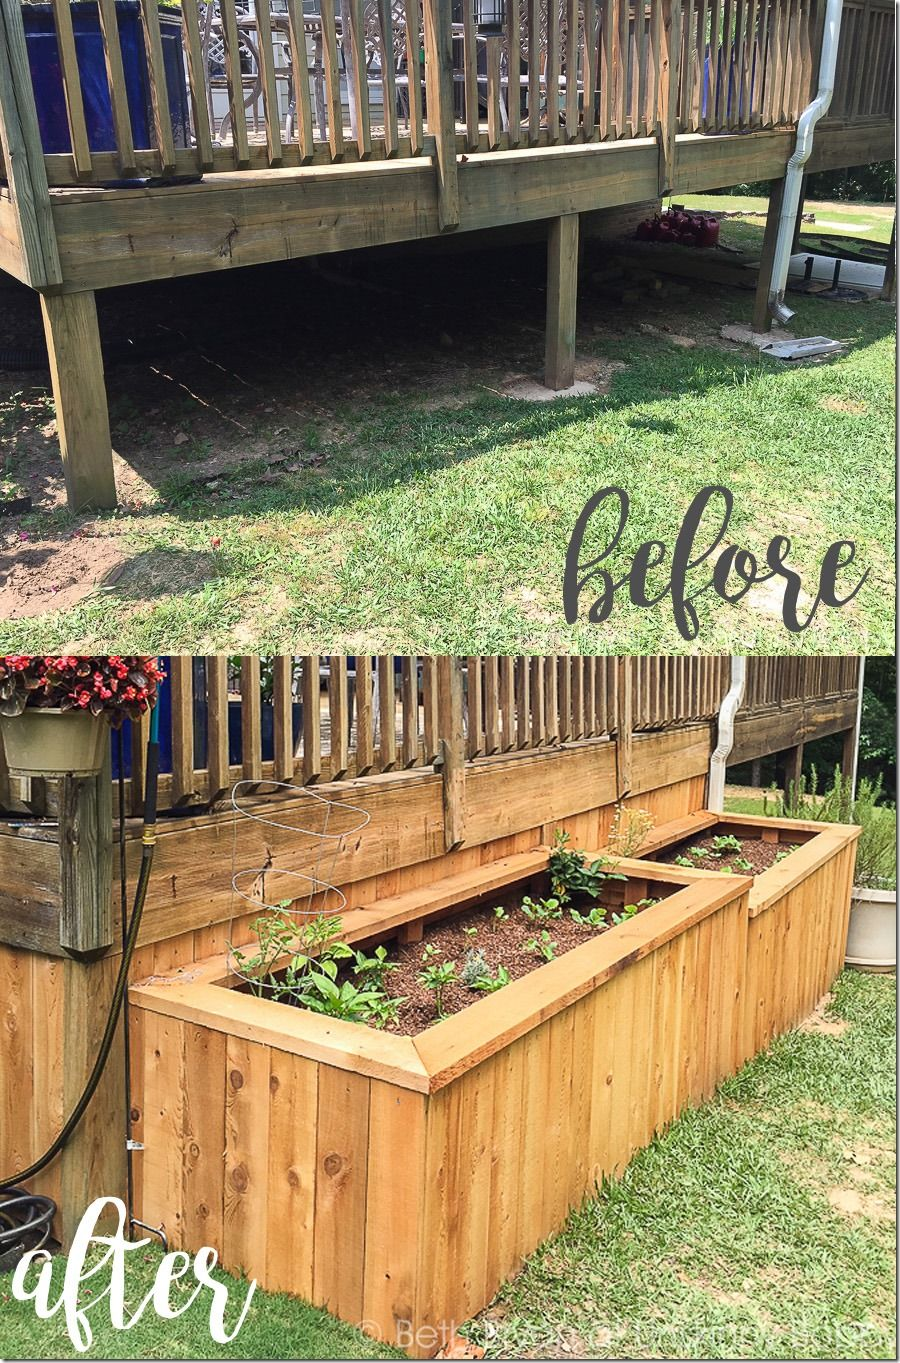 A Backyard Makeover With Raised Garden Beds Gardens Raised Beds